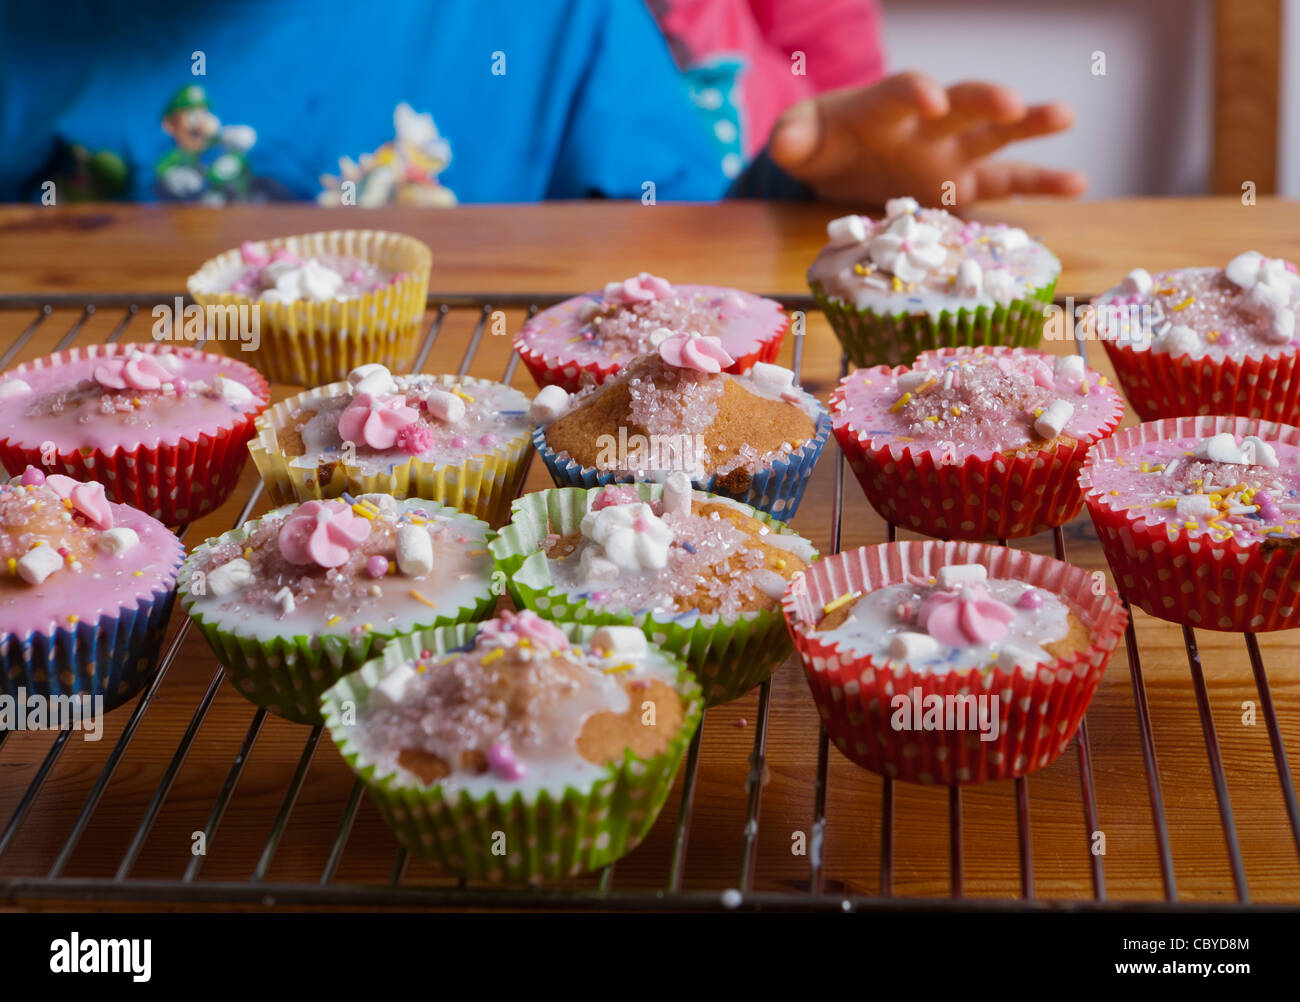 Close-up of cupcakes - Stock Image